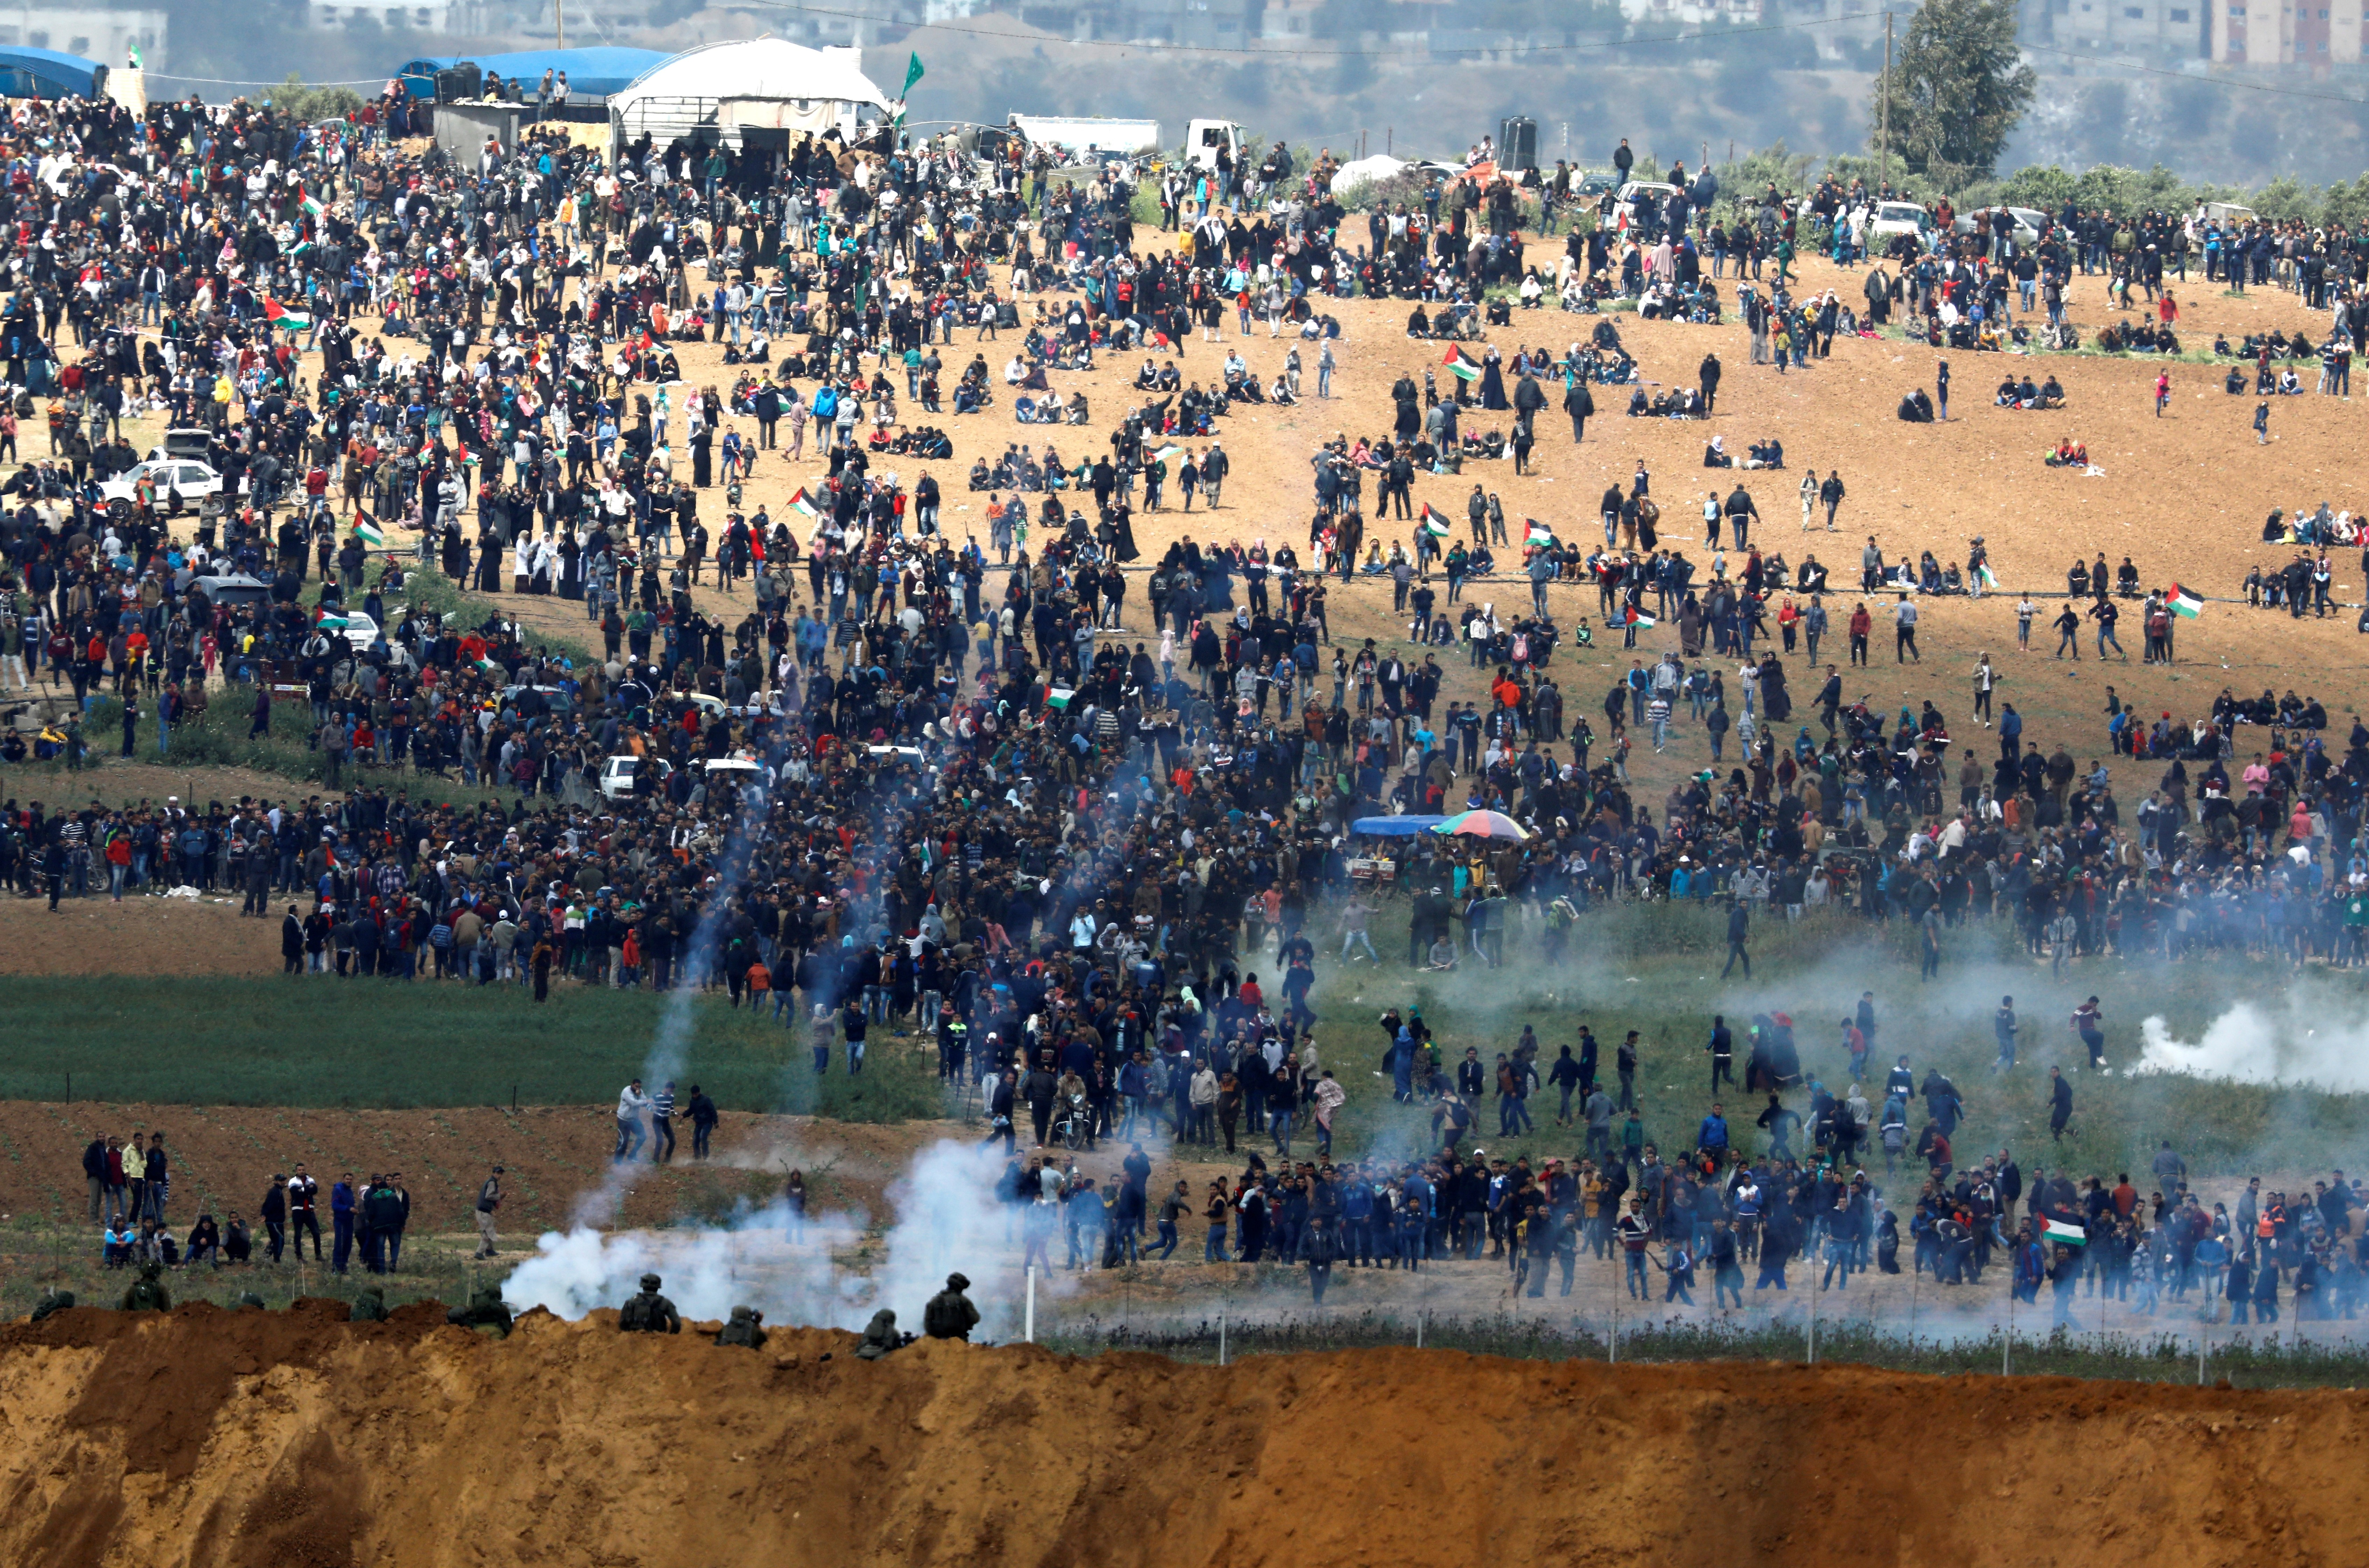 Israeli soldiers shoot tear gas from the Israeli side of the Israel-Gaza border, as Palestinians protest on the Gaza side of the border, March 30, 2018. (AMIR COHEN/REUTERS)